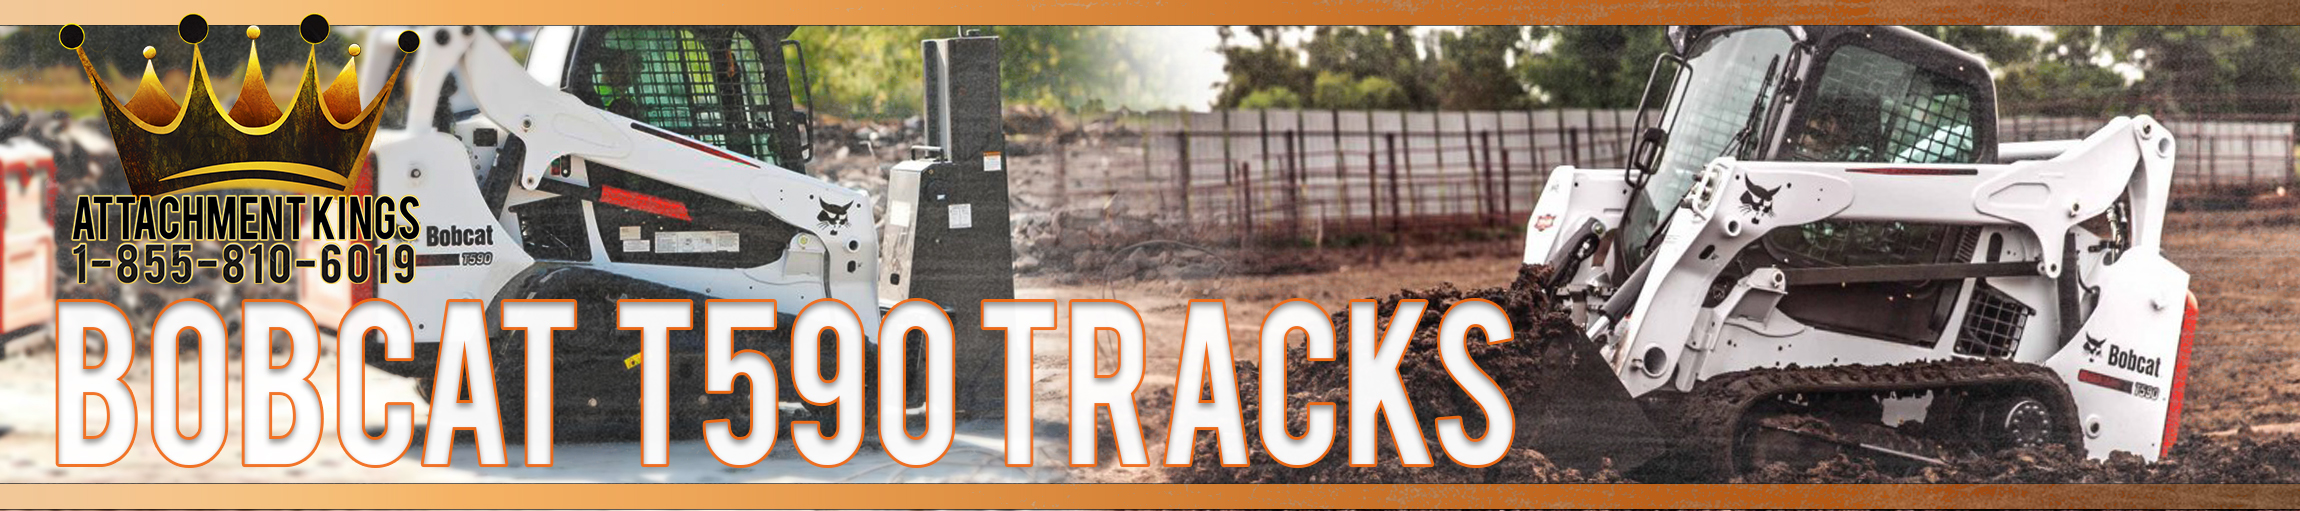 Replacement Tracks for Bobcat T590